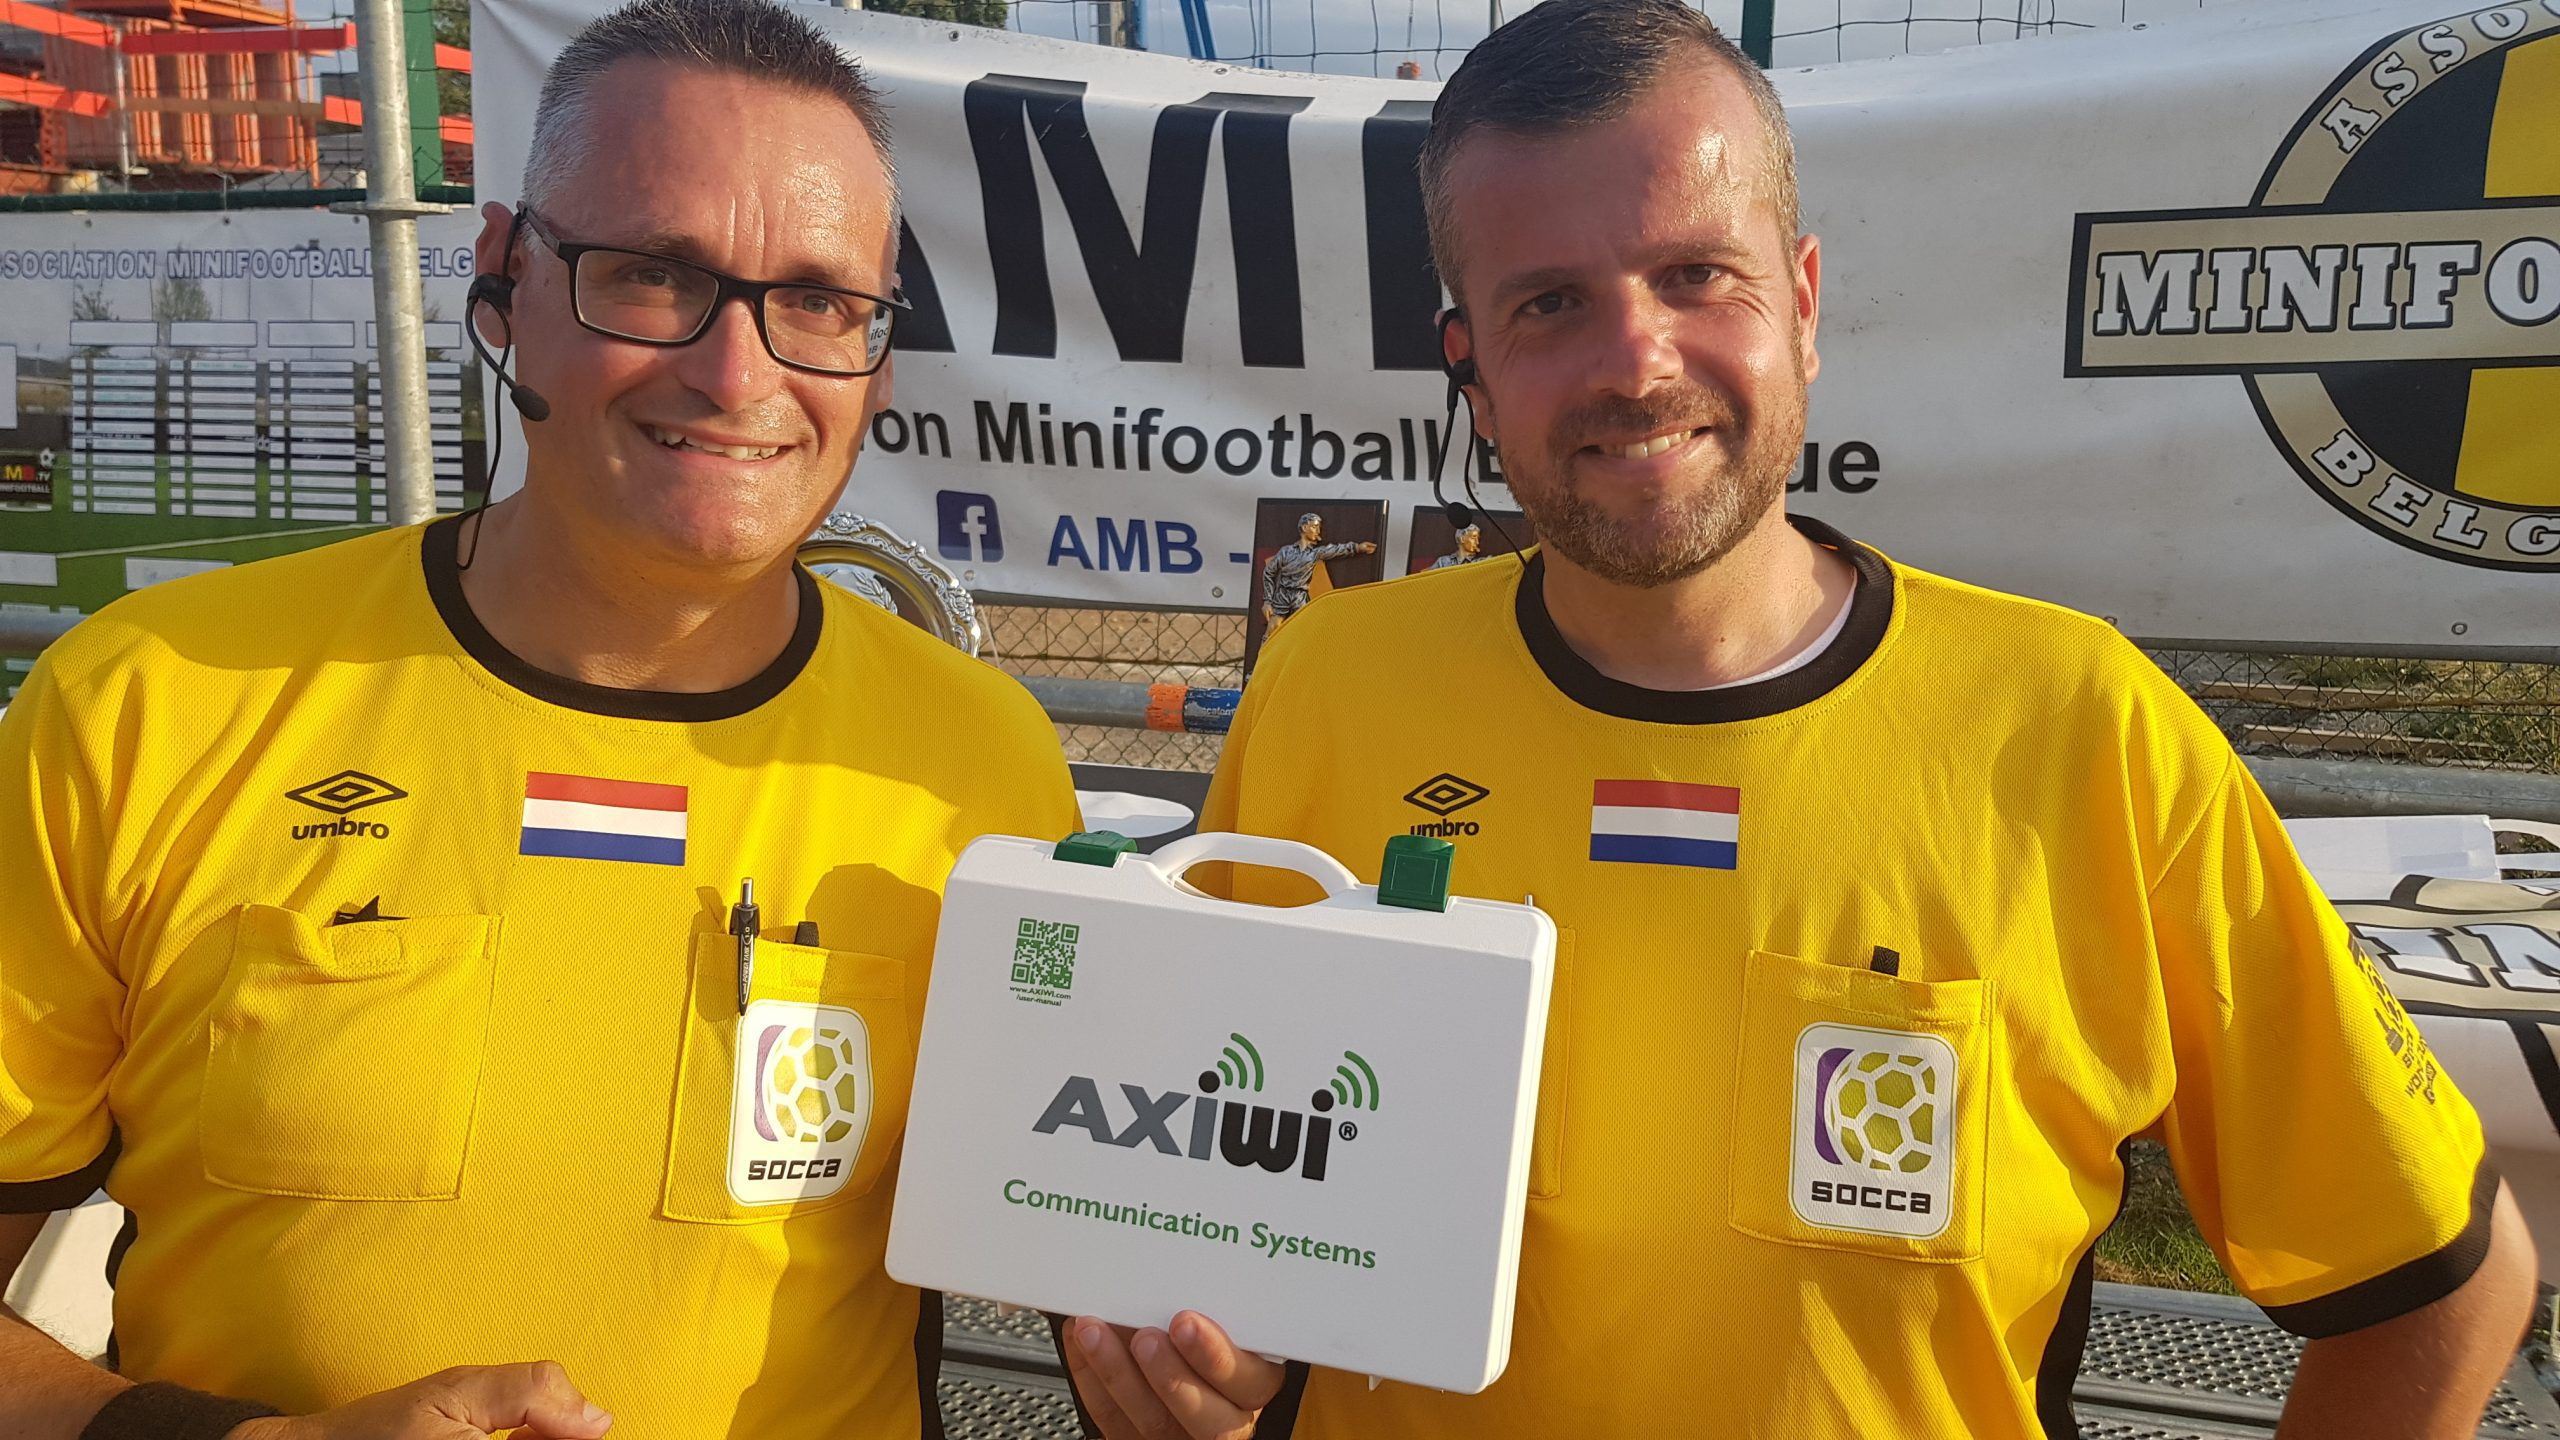 socca-elite-referees-benefit-from-elite-axiwi-equipment